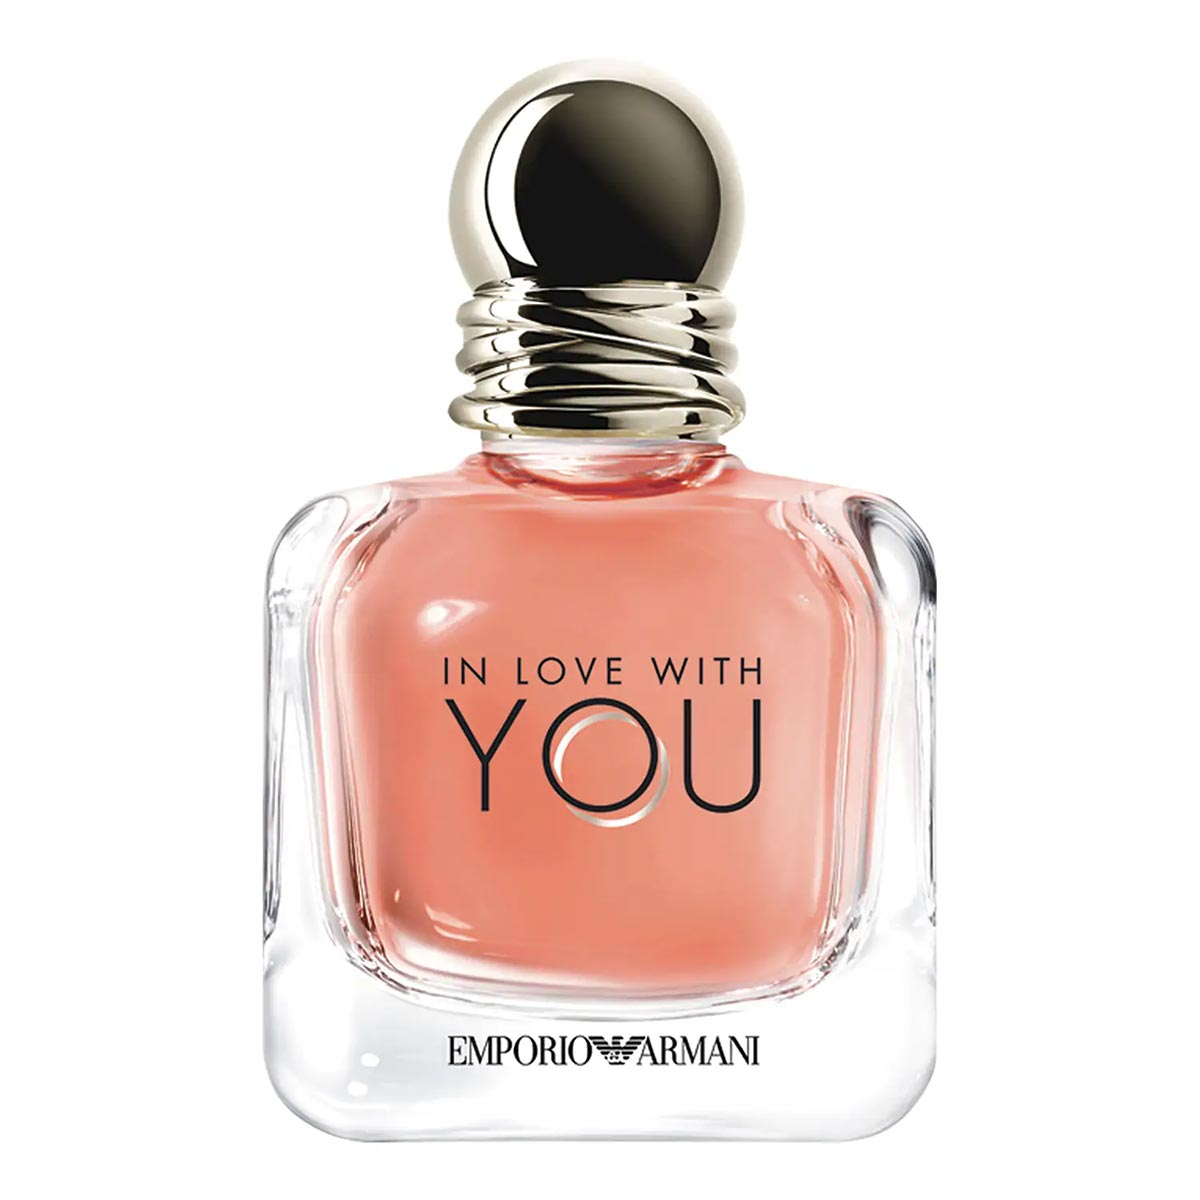 Eau de Parfum Emporio Armani In love with You - ARMANI